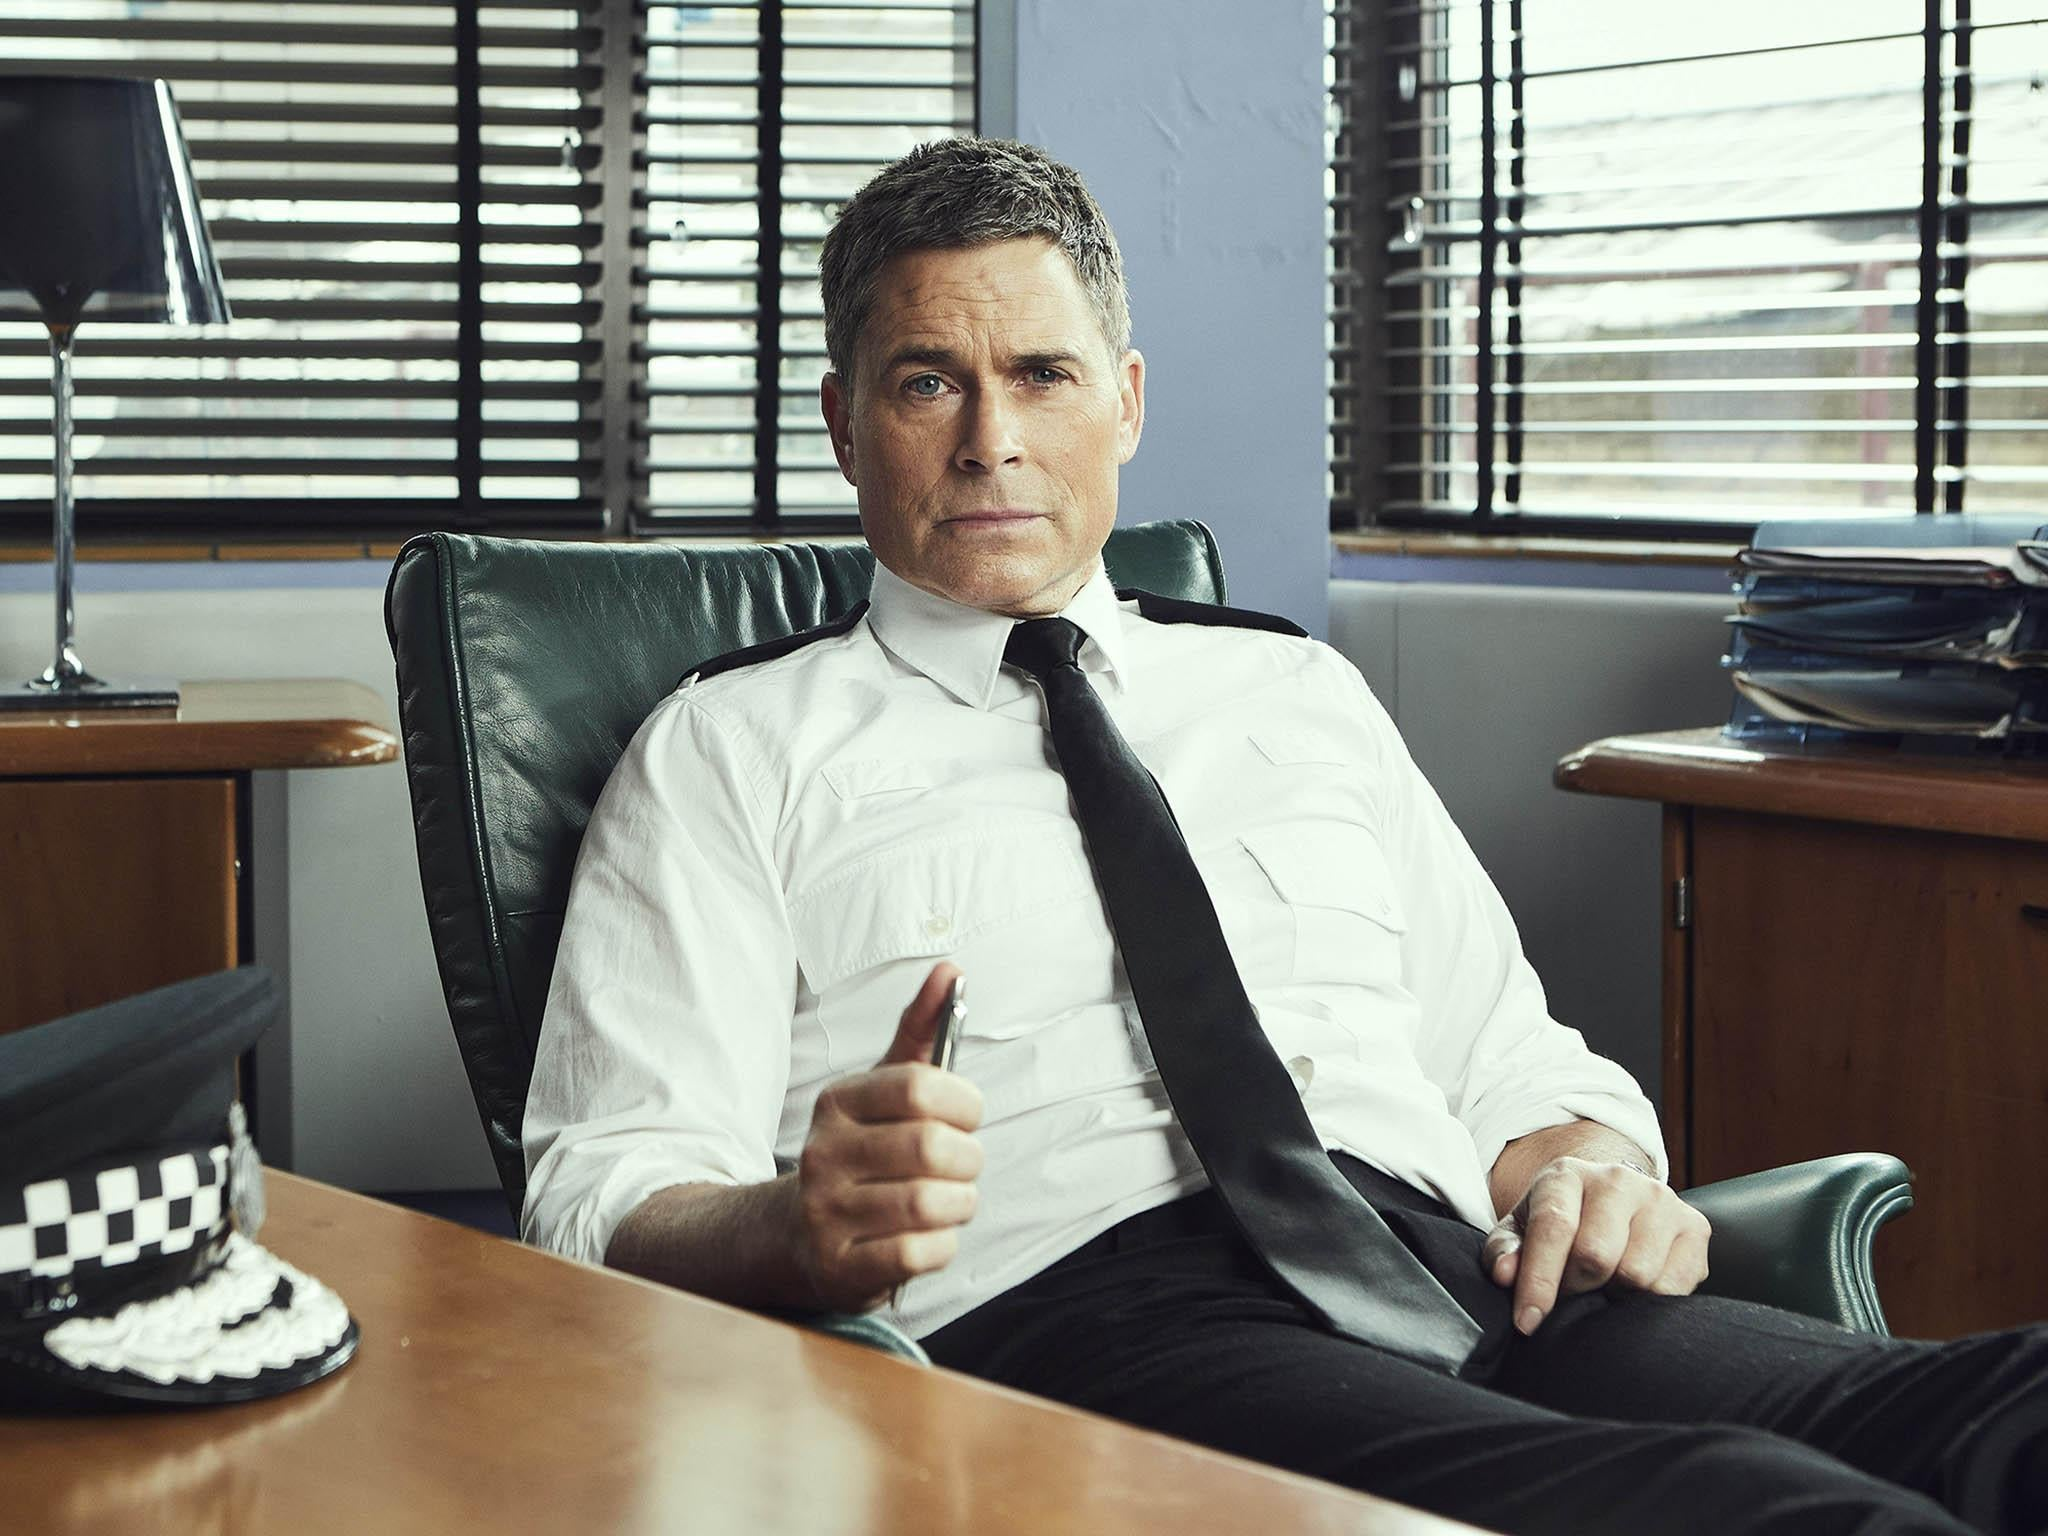 3 Sheets To The Wind Tv Show wild bill review: rob lowe's new lincolnshire-set cop drama